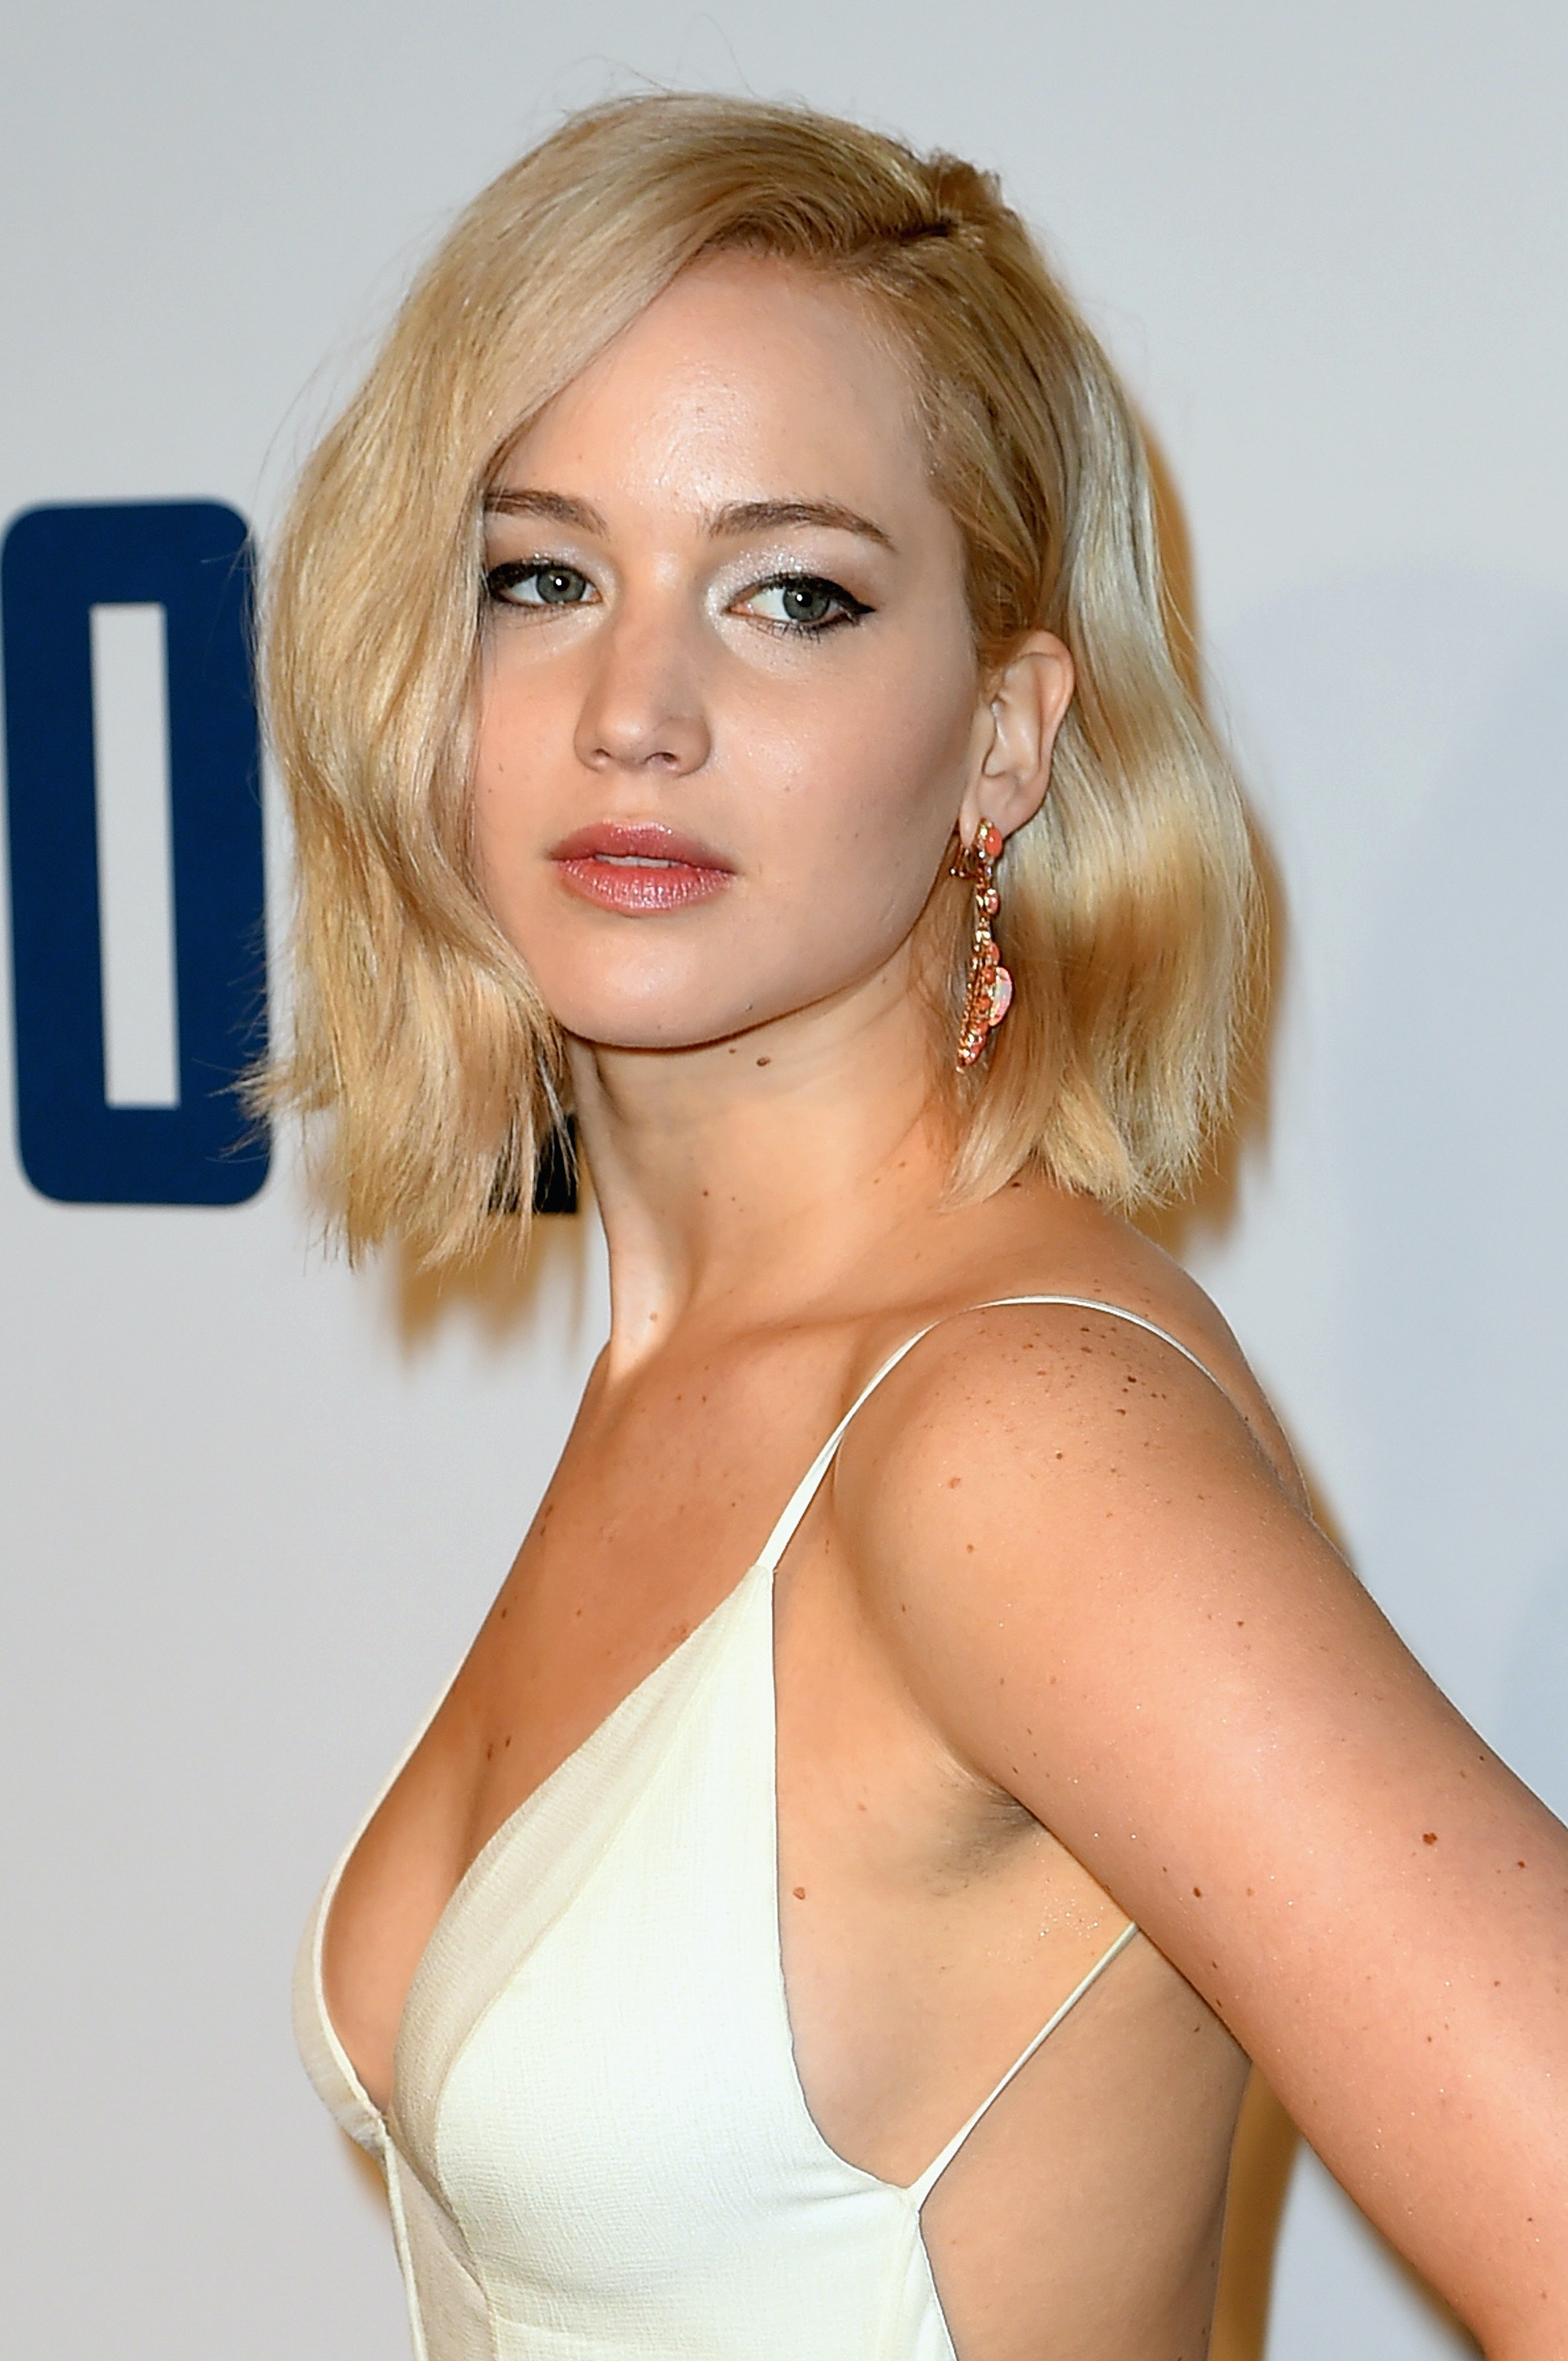 Cool Who Has Jennifer Lawrence Dated The List Is Short But Full Of Short Hairstyles Gunalazisus